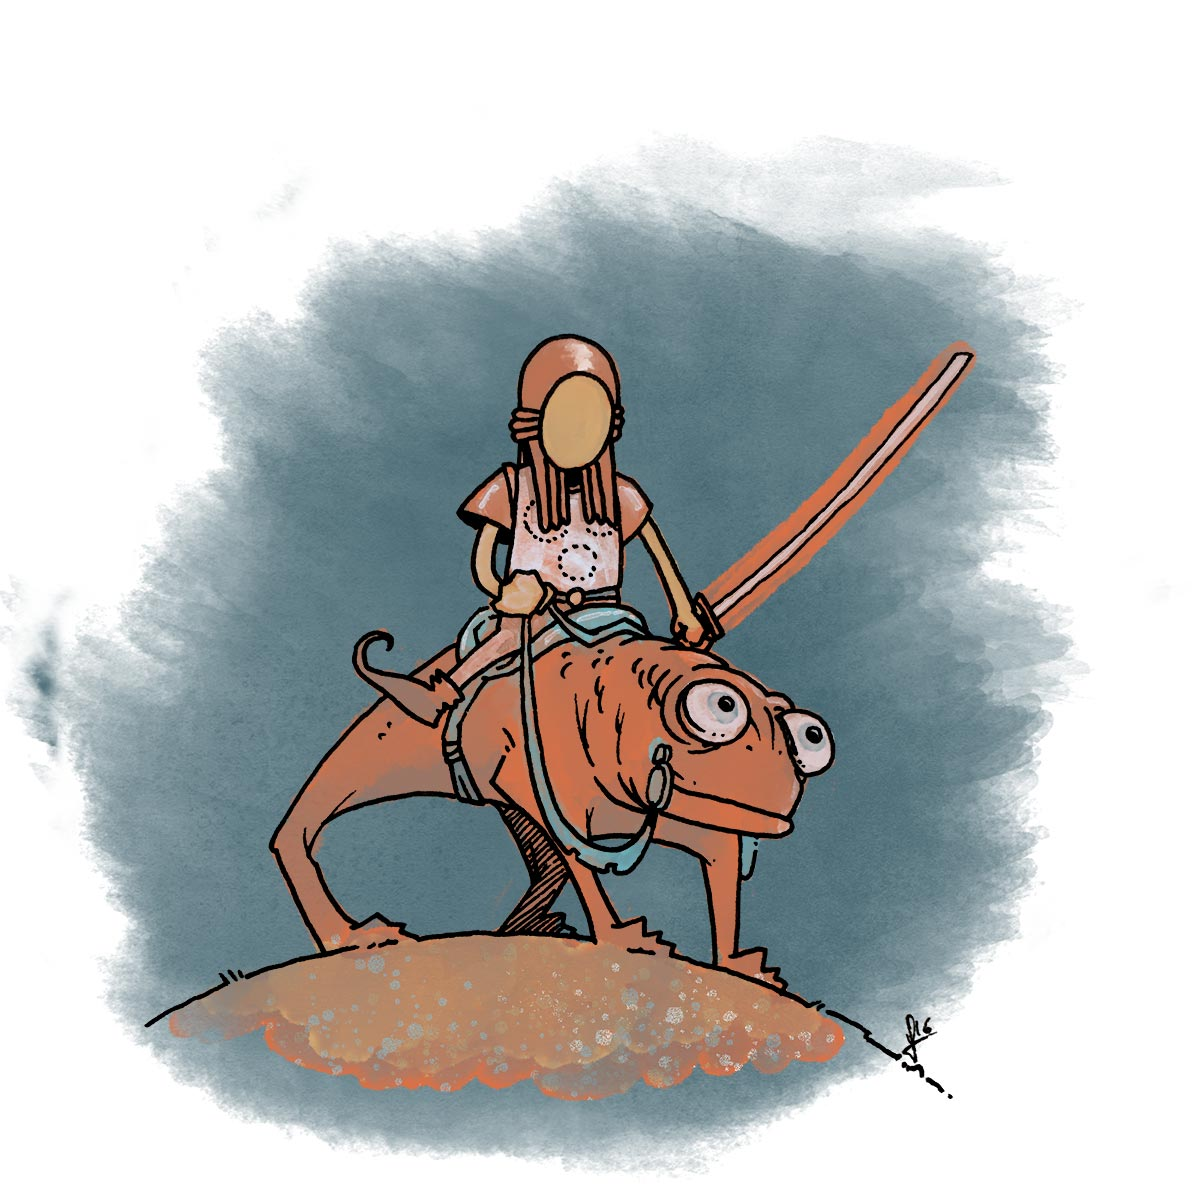 who is this noble chameleon rider?